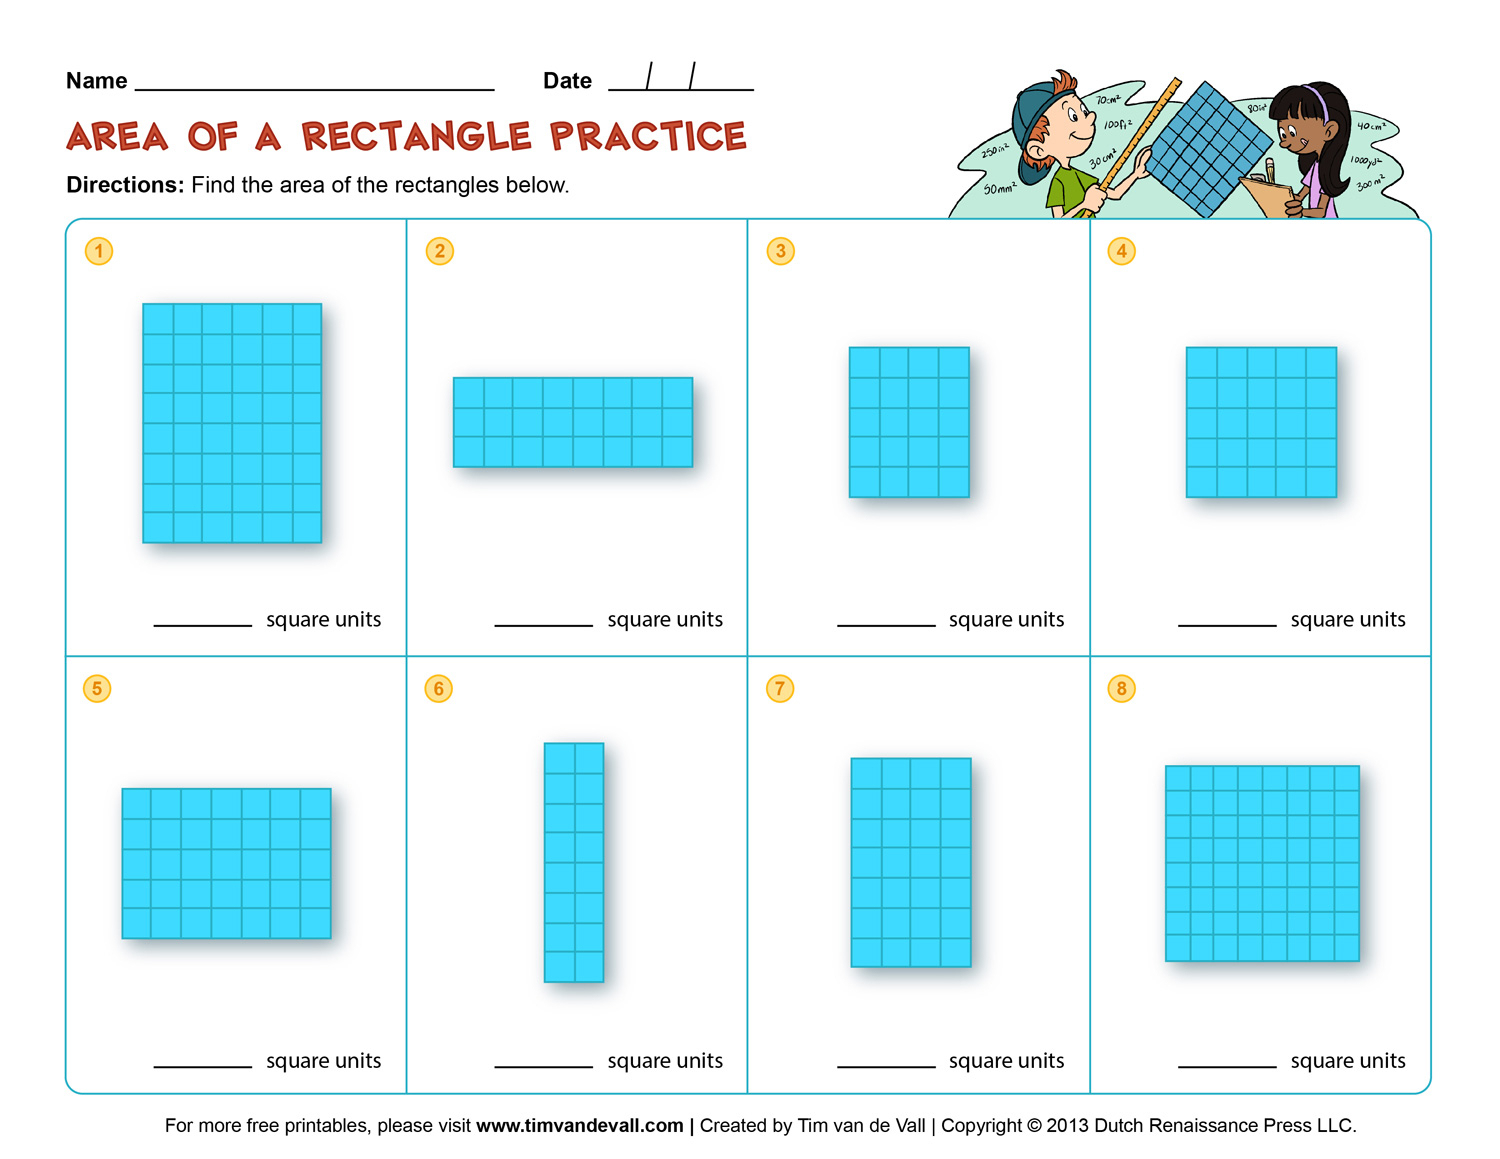 Perimeter Worksheets 3Rd Grade For Education - Math Worksheet For Kids - Free Printable Perimeter Worksheets 3Rd Grade